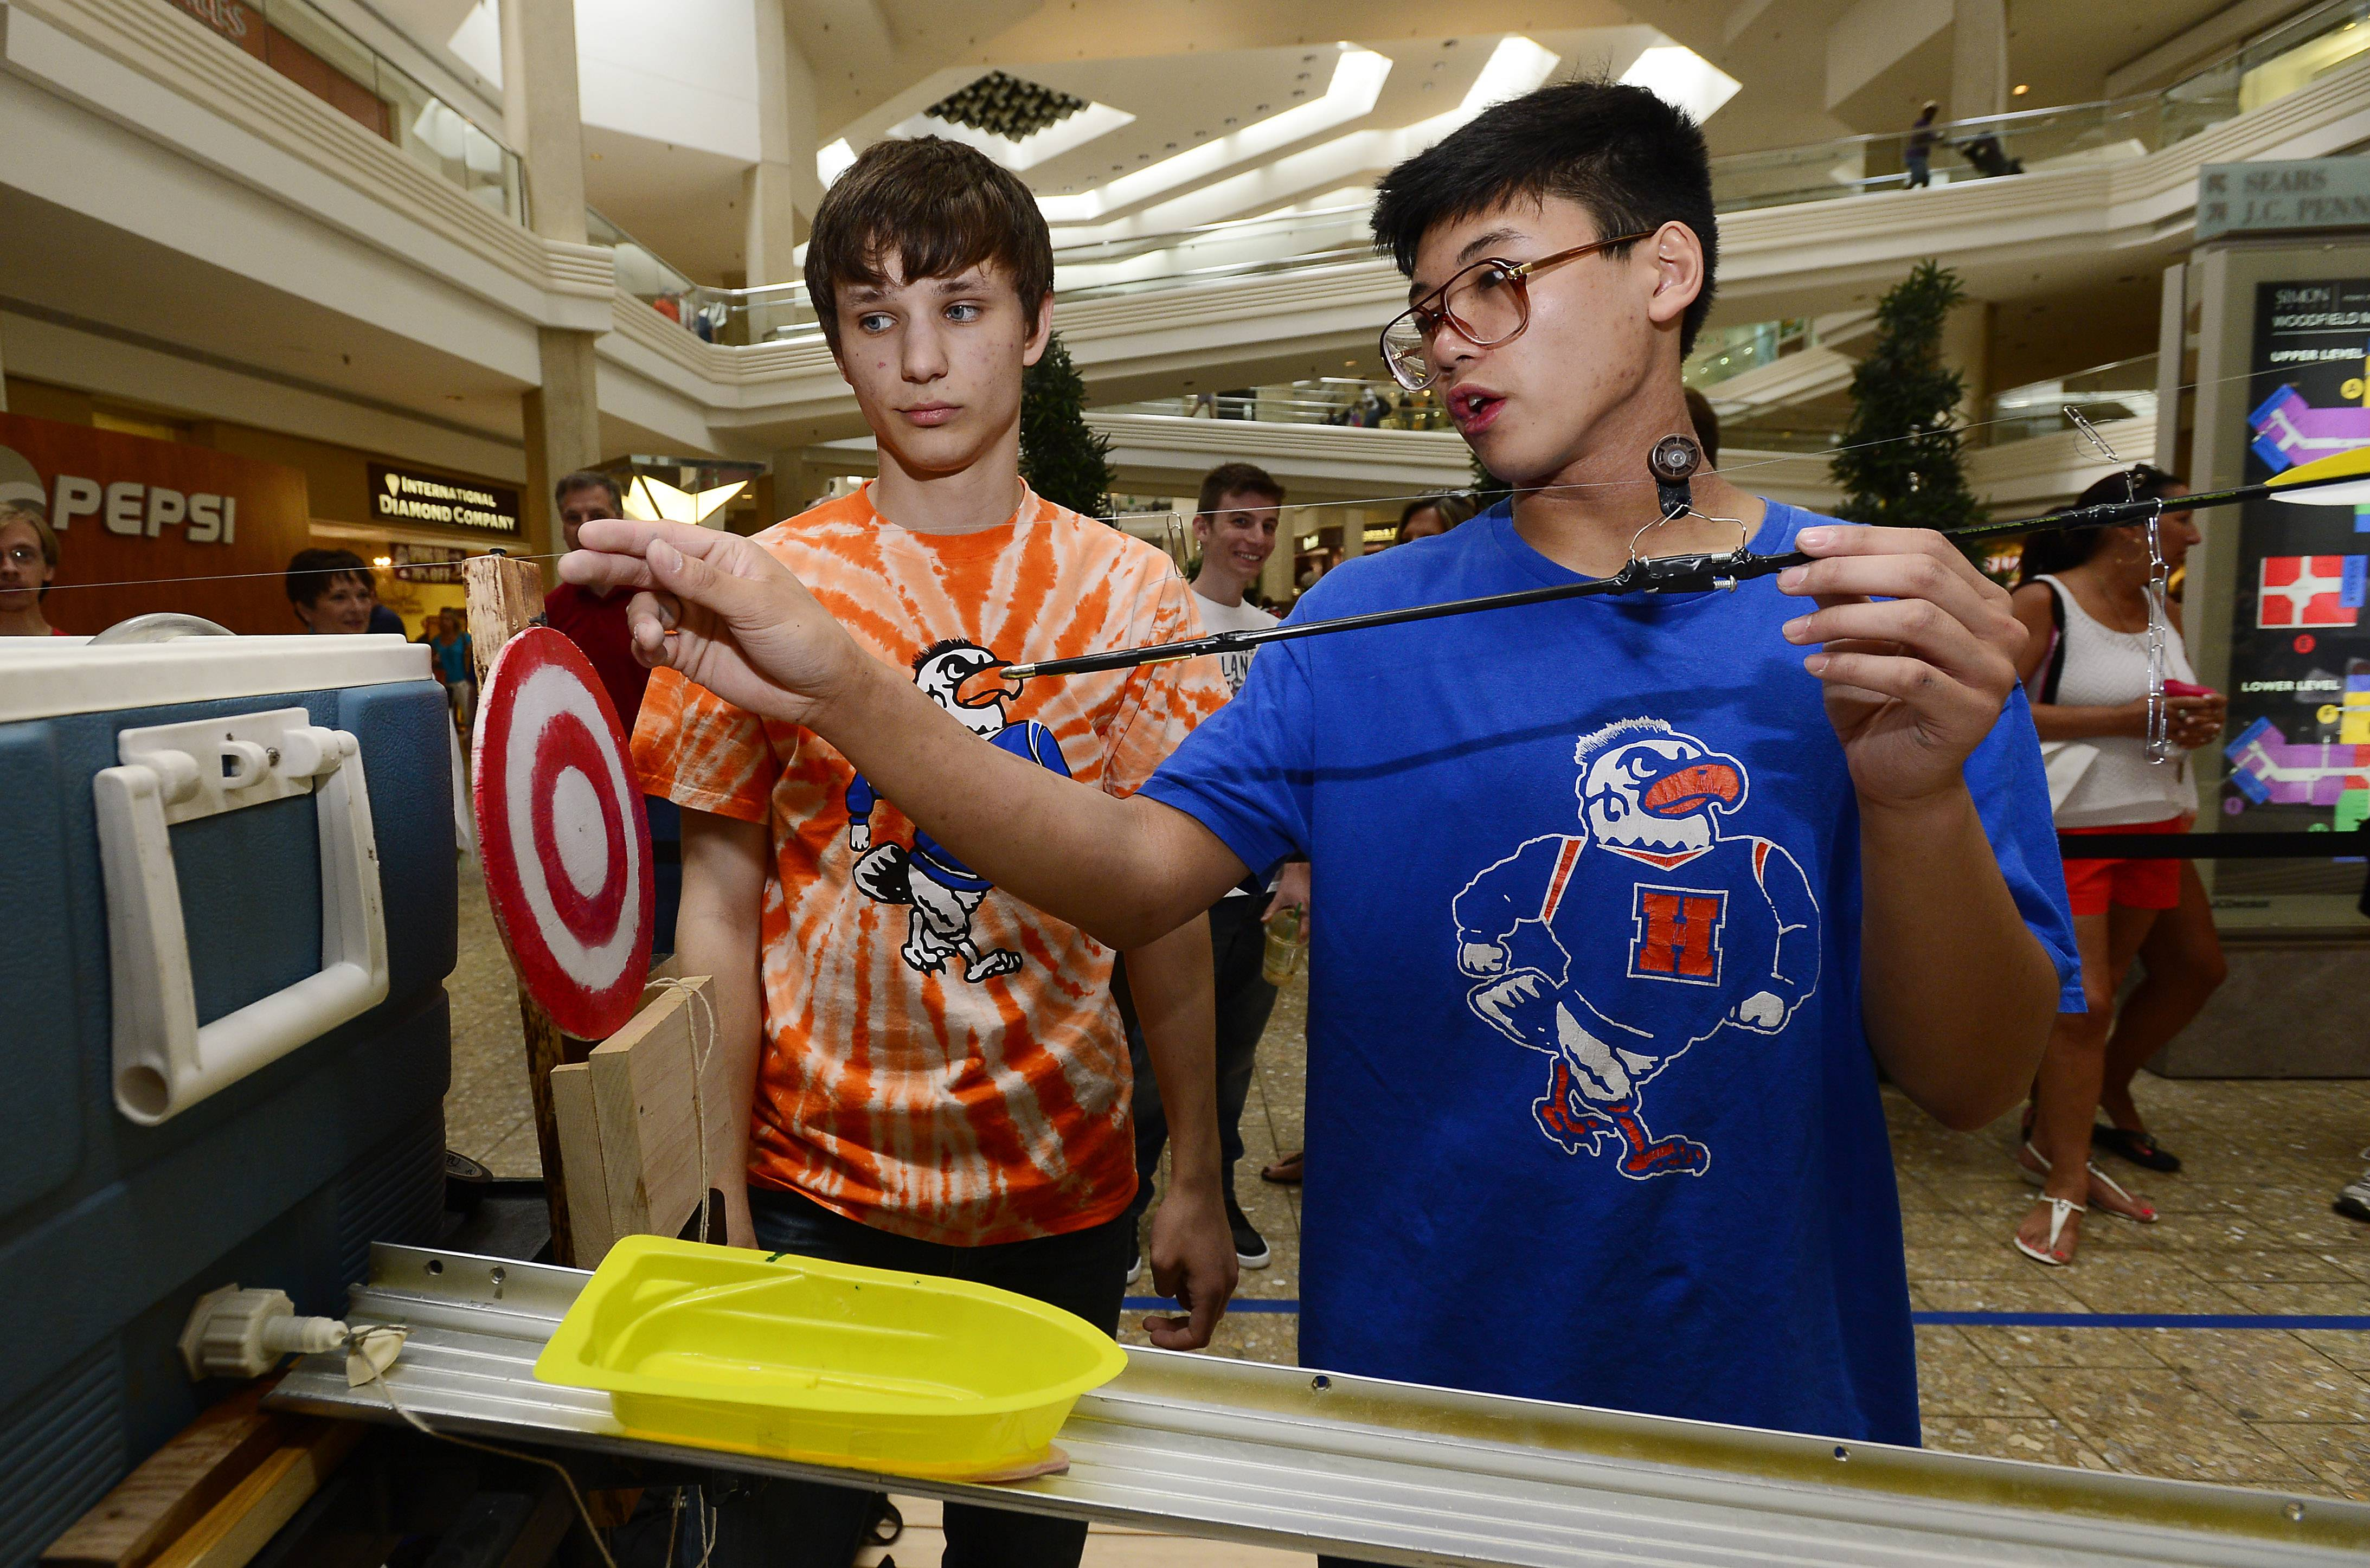 Lars Gavris, 17, of Hoffman Estates High School and recent graduate Gregg Lugo, 18, fine tune their Rube Goldberg machine, which was used to cut the ribbon on the new Boy Scouts recruitment center at Woodfield Mall.